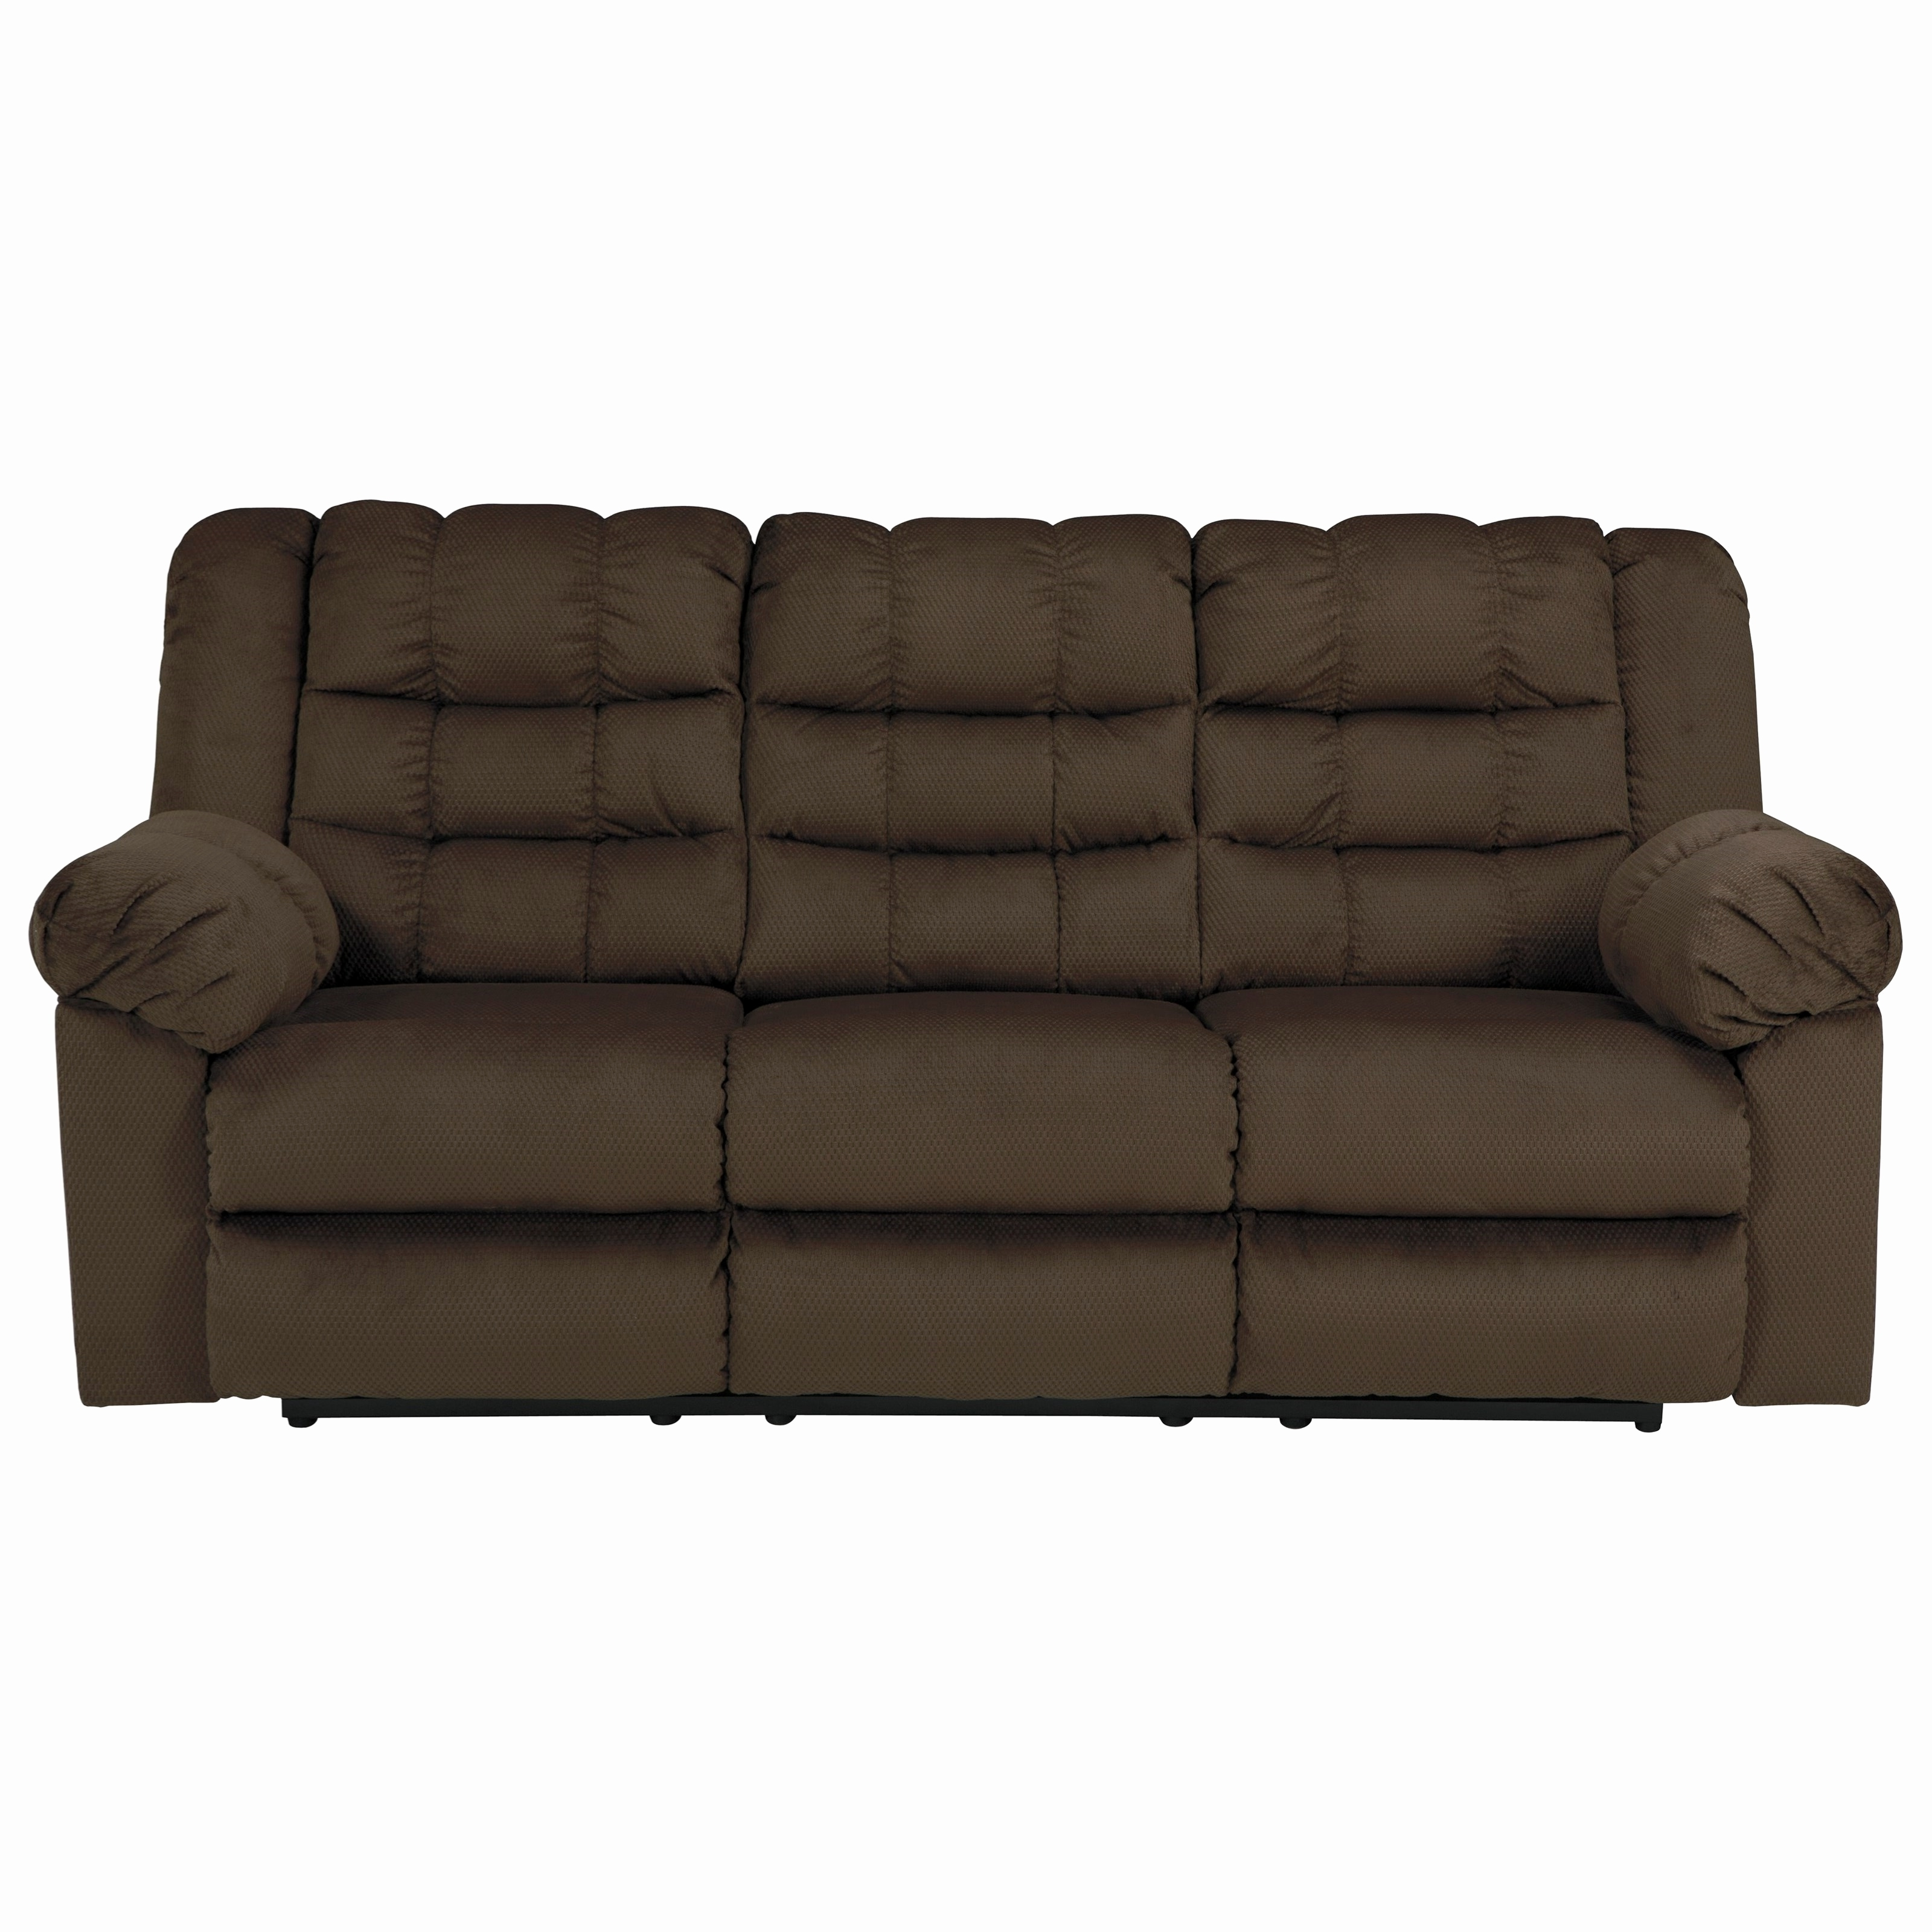 Favorite Luxury Sectional Sofas Mn 2018 – Couches Ideas Within Mn Sectional Sofas (View 3 of 20)